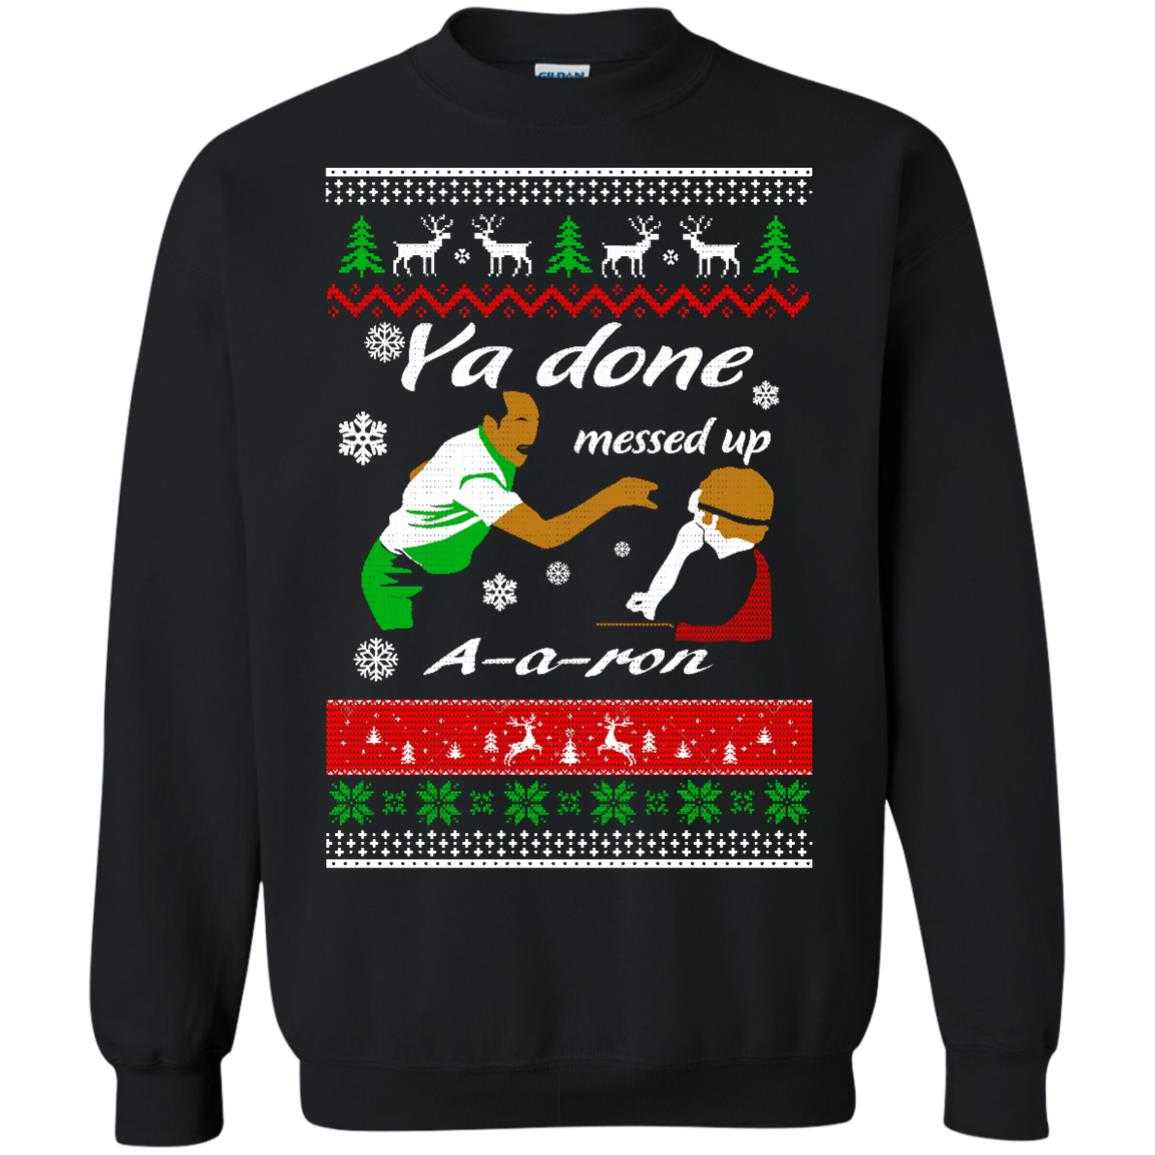 1335c69a Ya Done Messed Up A-a-ron Christmas Sweater, hoodie - image 622 500x500